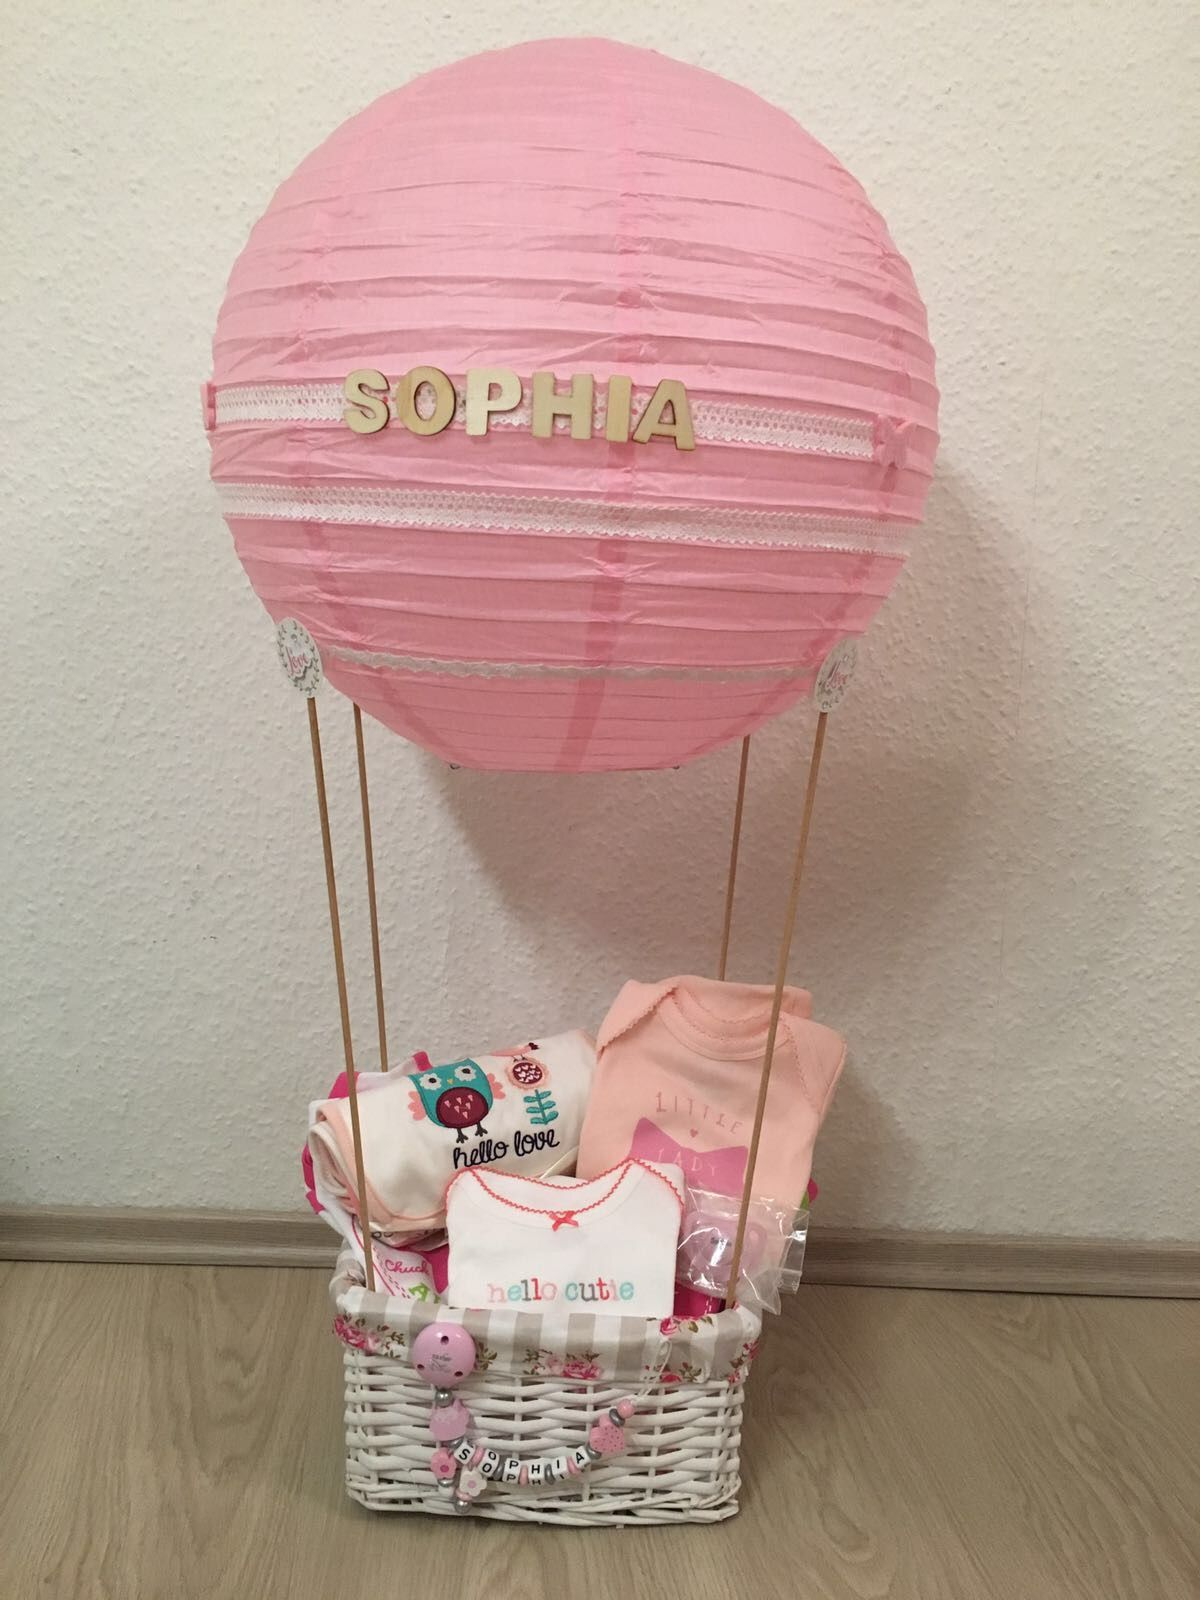 babyshower geschenk ballon too cute pinterest cute. Black Bedroom Furniture Sets. Home Design Ideas